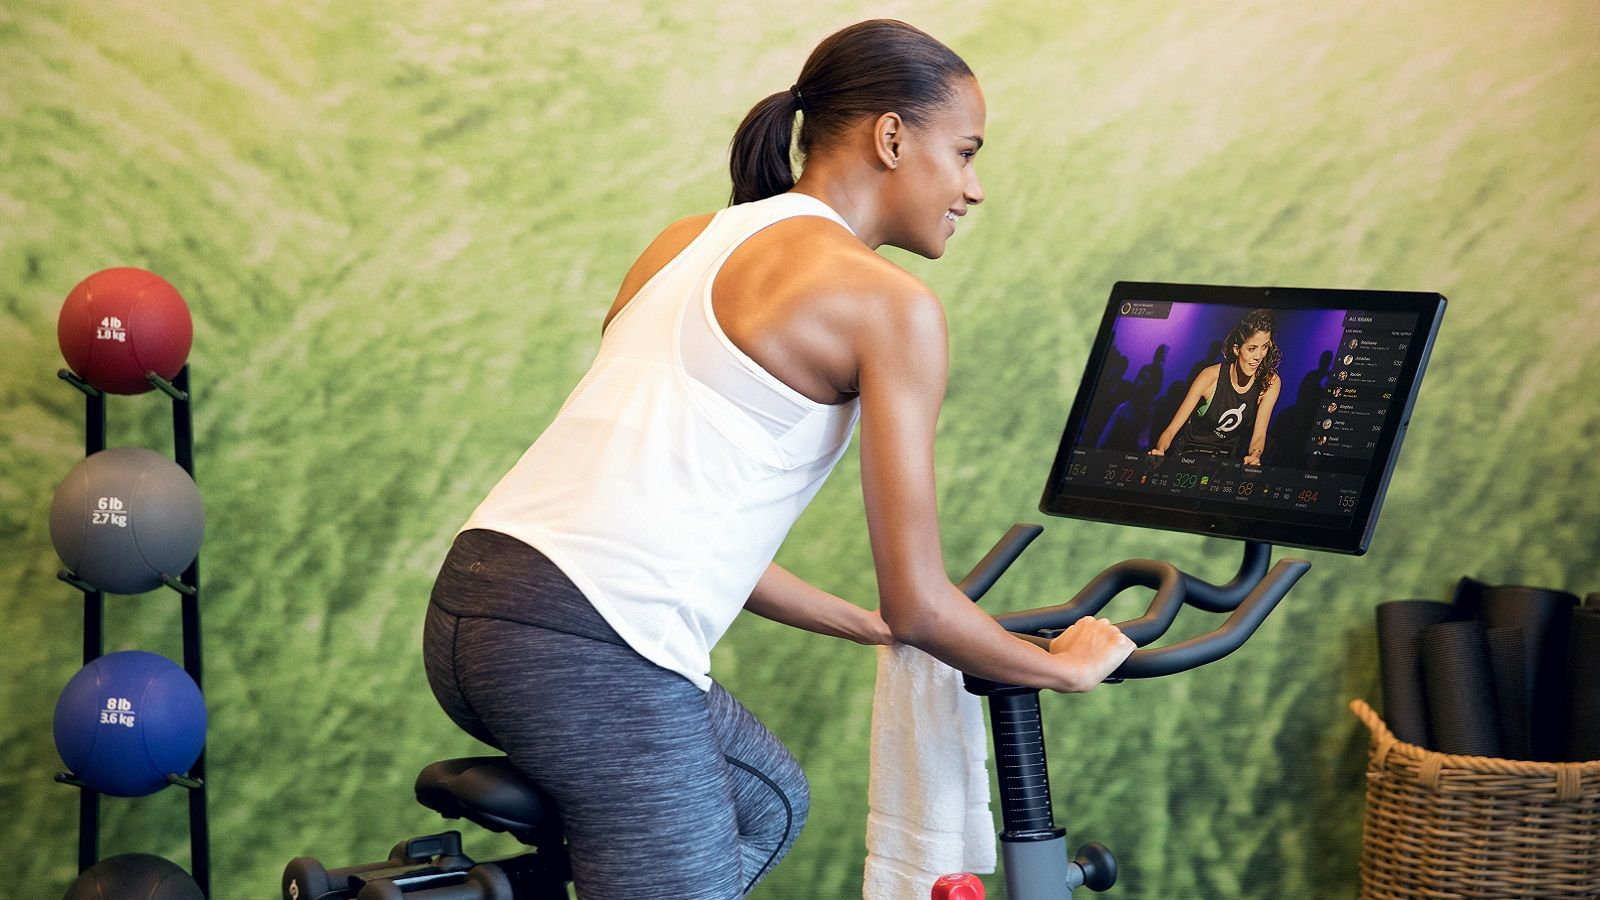 WestinWORKOUT with Peloton | Westin Hotels and Resorts